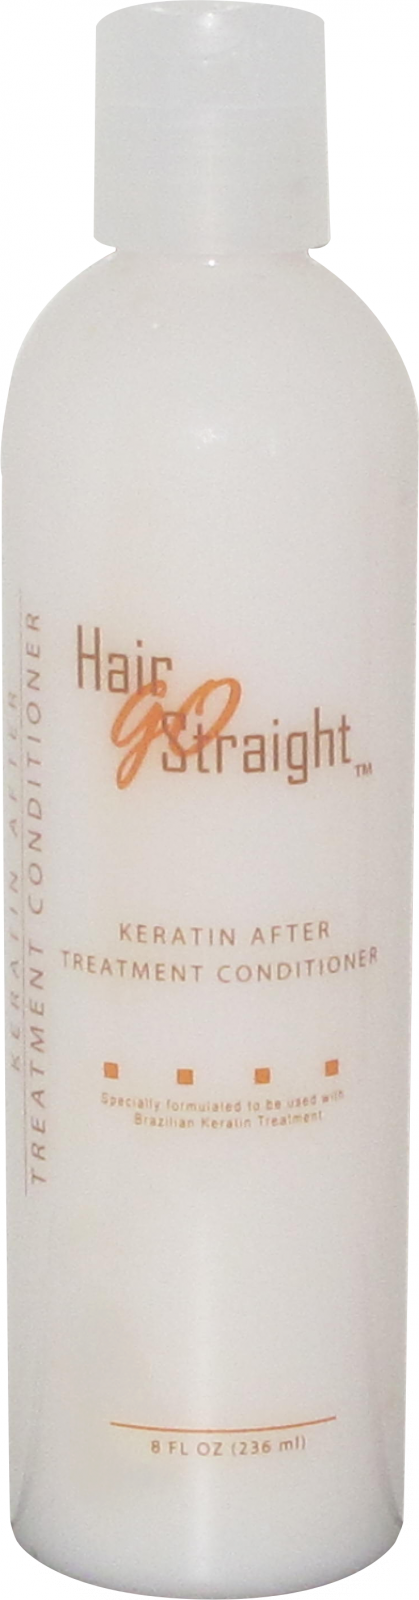 CONDITIONER%20HAIR%20GO%20STRAIGHT%20240%20ml